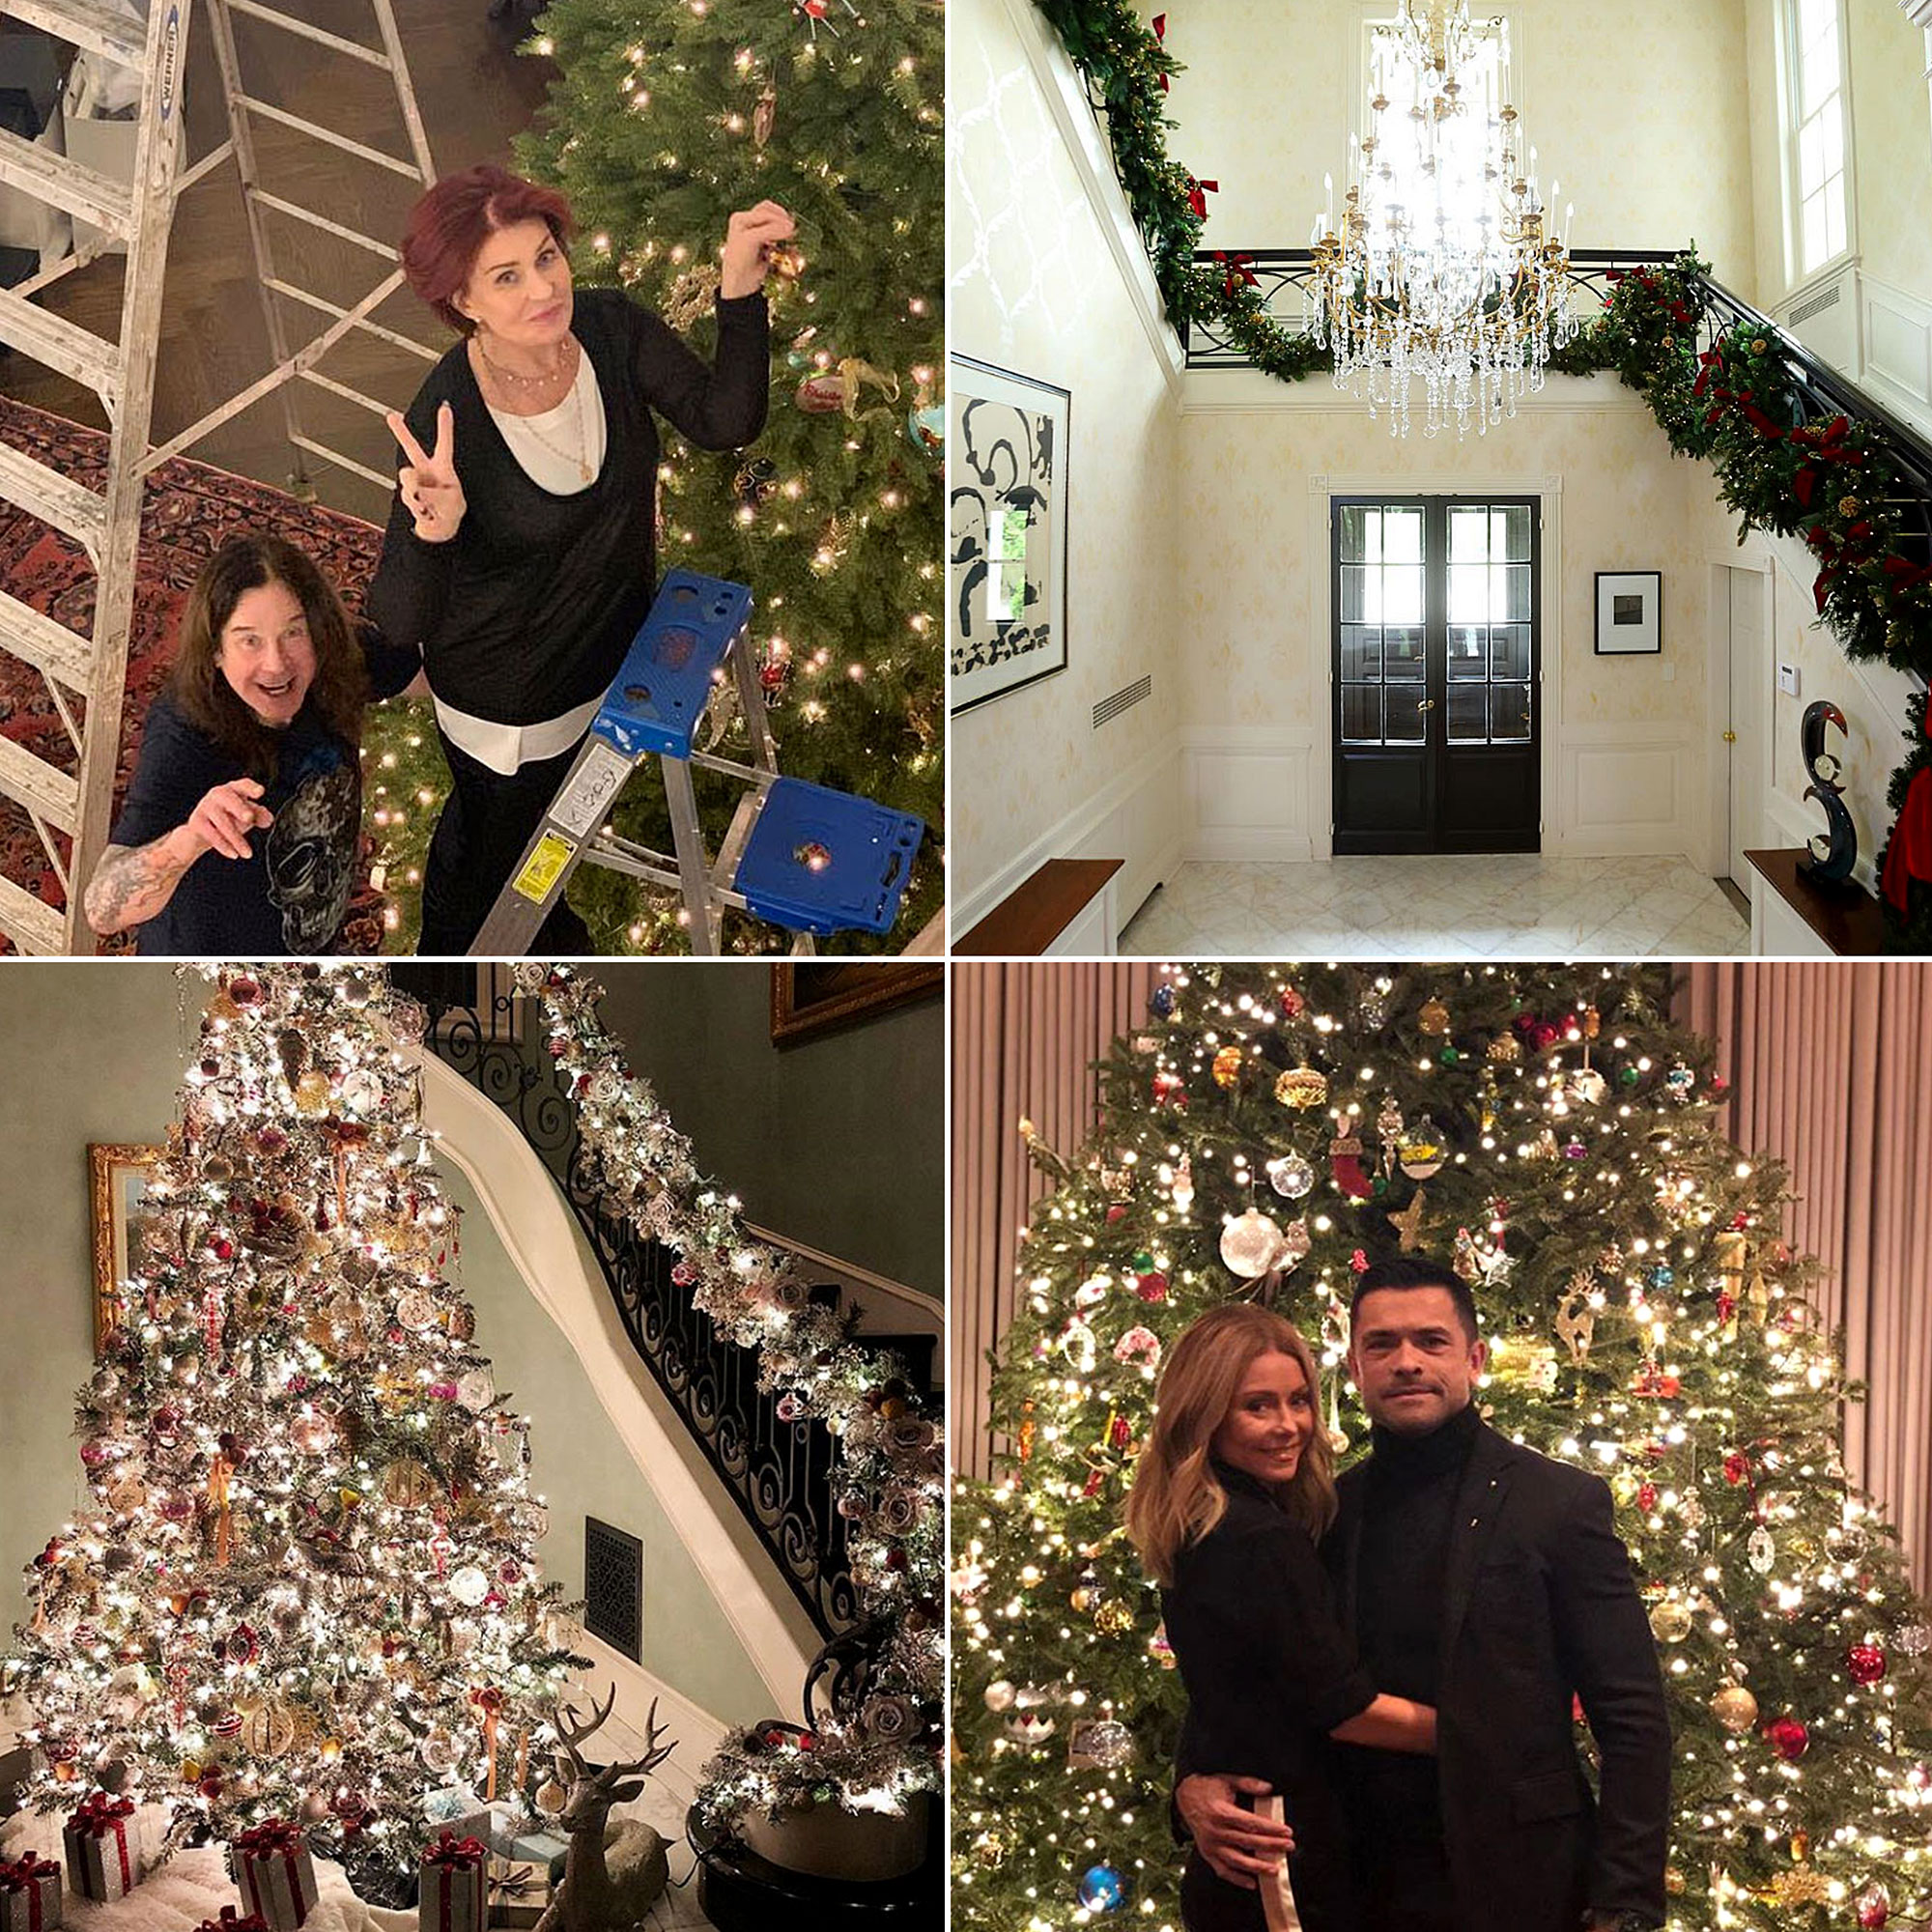 stars go all out with holiday decorations gallery - Seeing is believing! From elaborate trees to beaming lights, celebrities including Kelly Ripa , Ozzy and Sharon Osbourne and more have gotten in the 2018 holiday spirit by decking their halls with lovely decor.